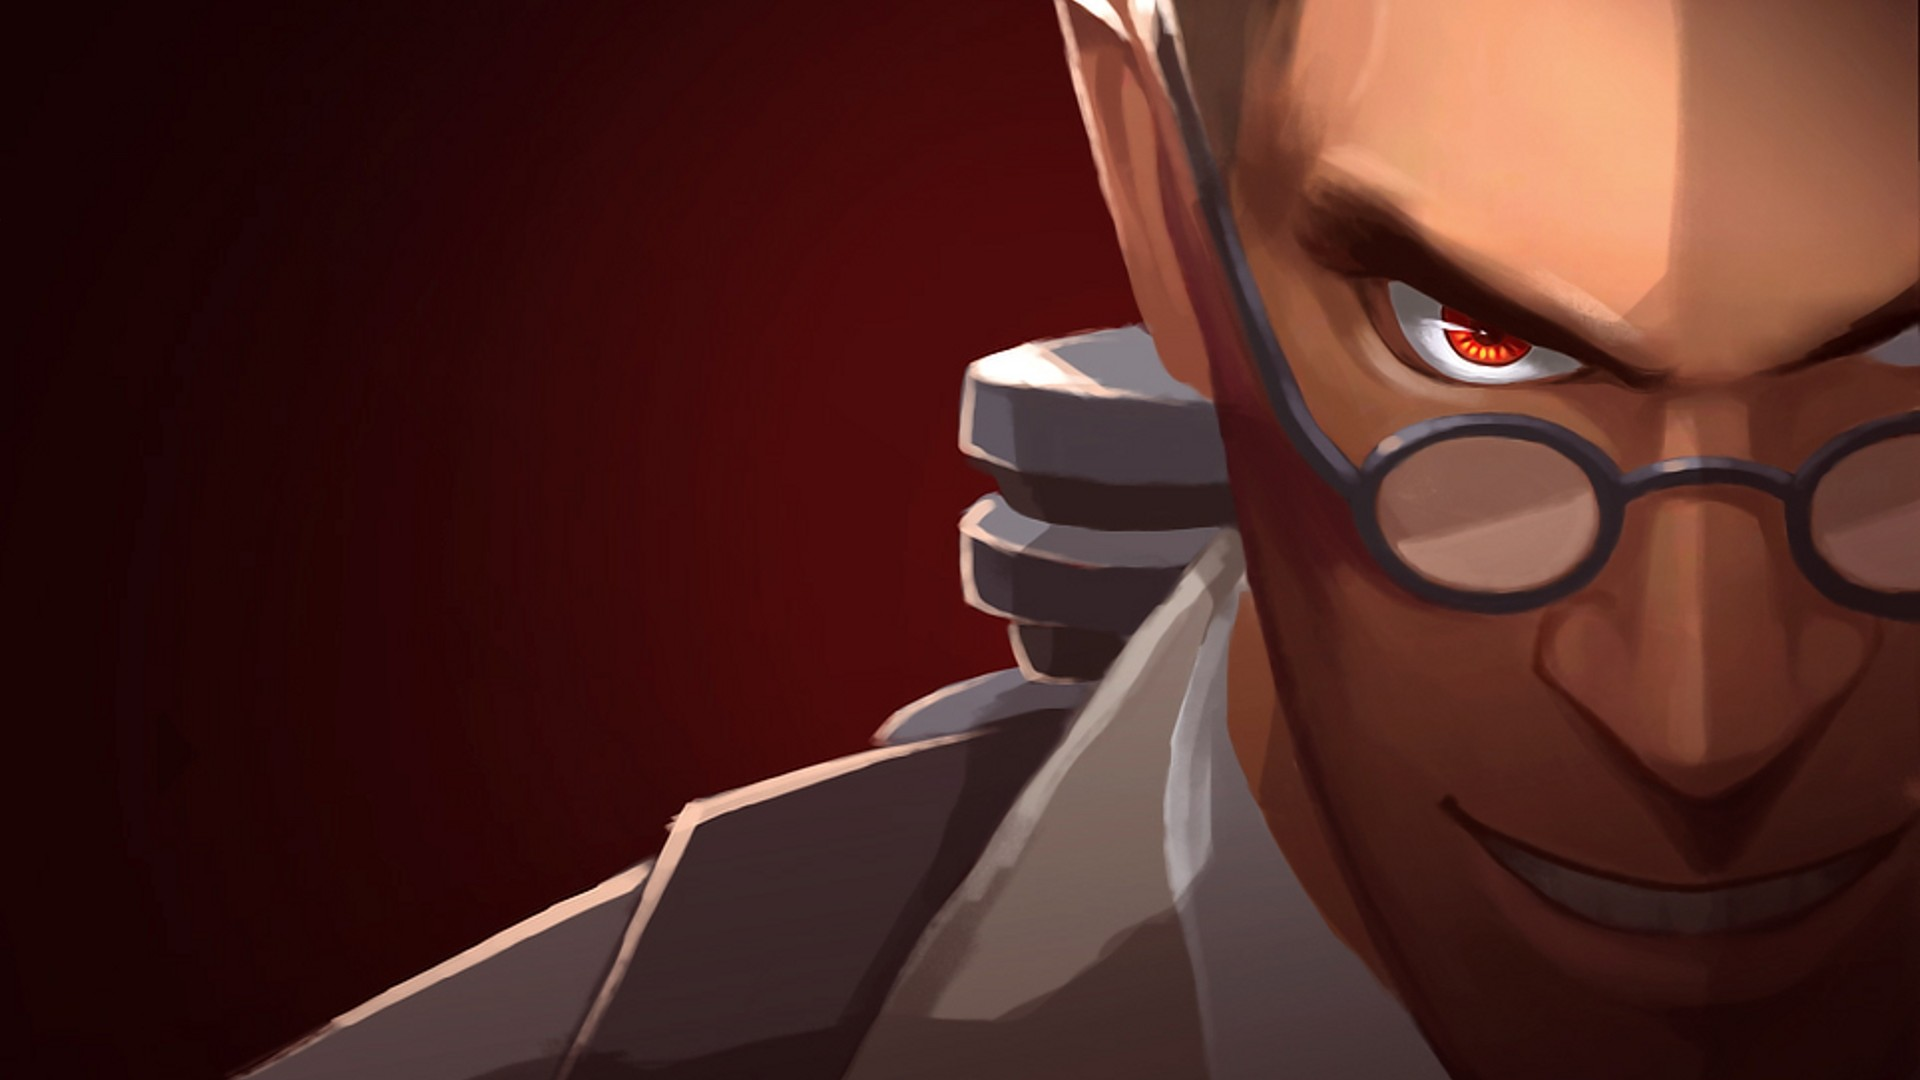 Team Fortress 2(TF2) images TF2 Red Medic HD wallpaper and background photos